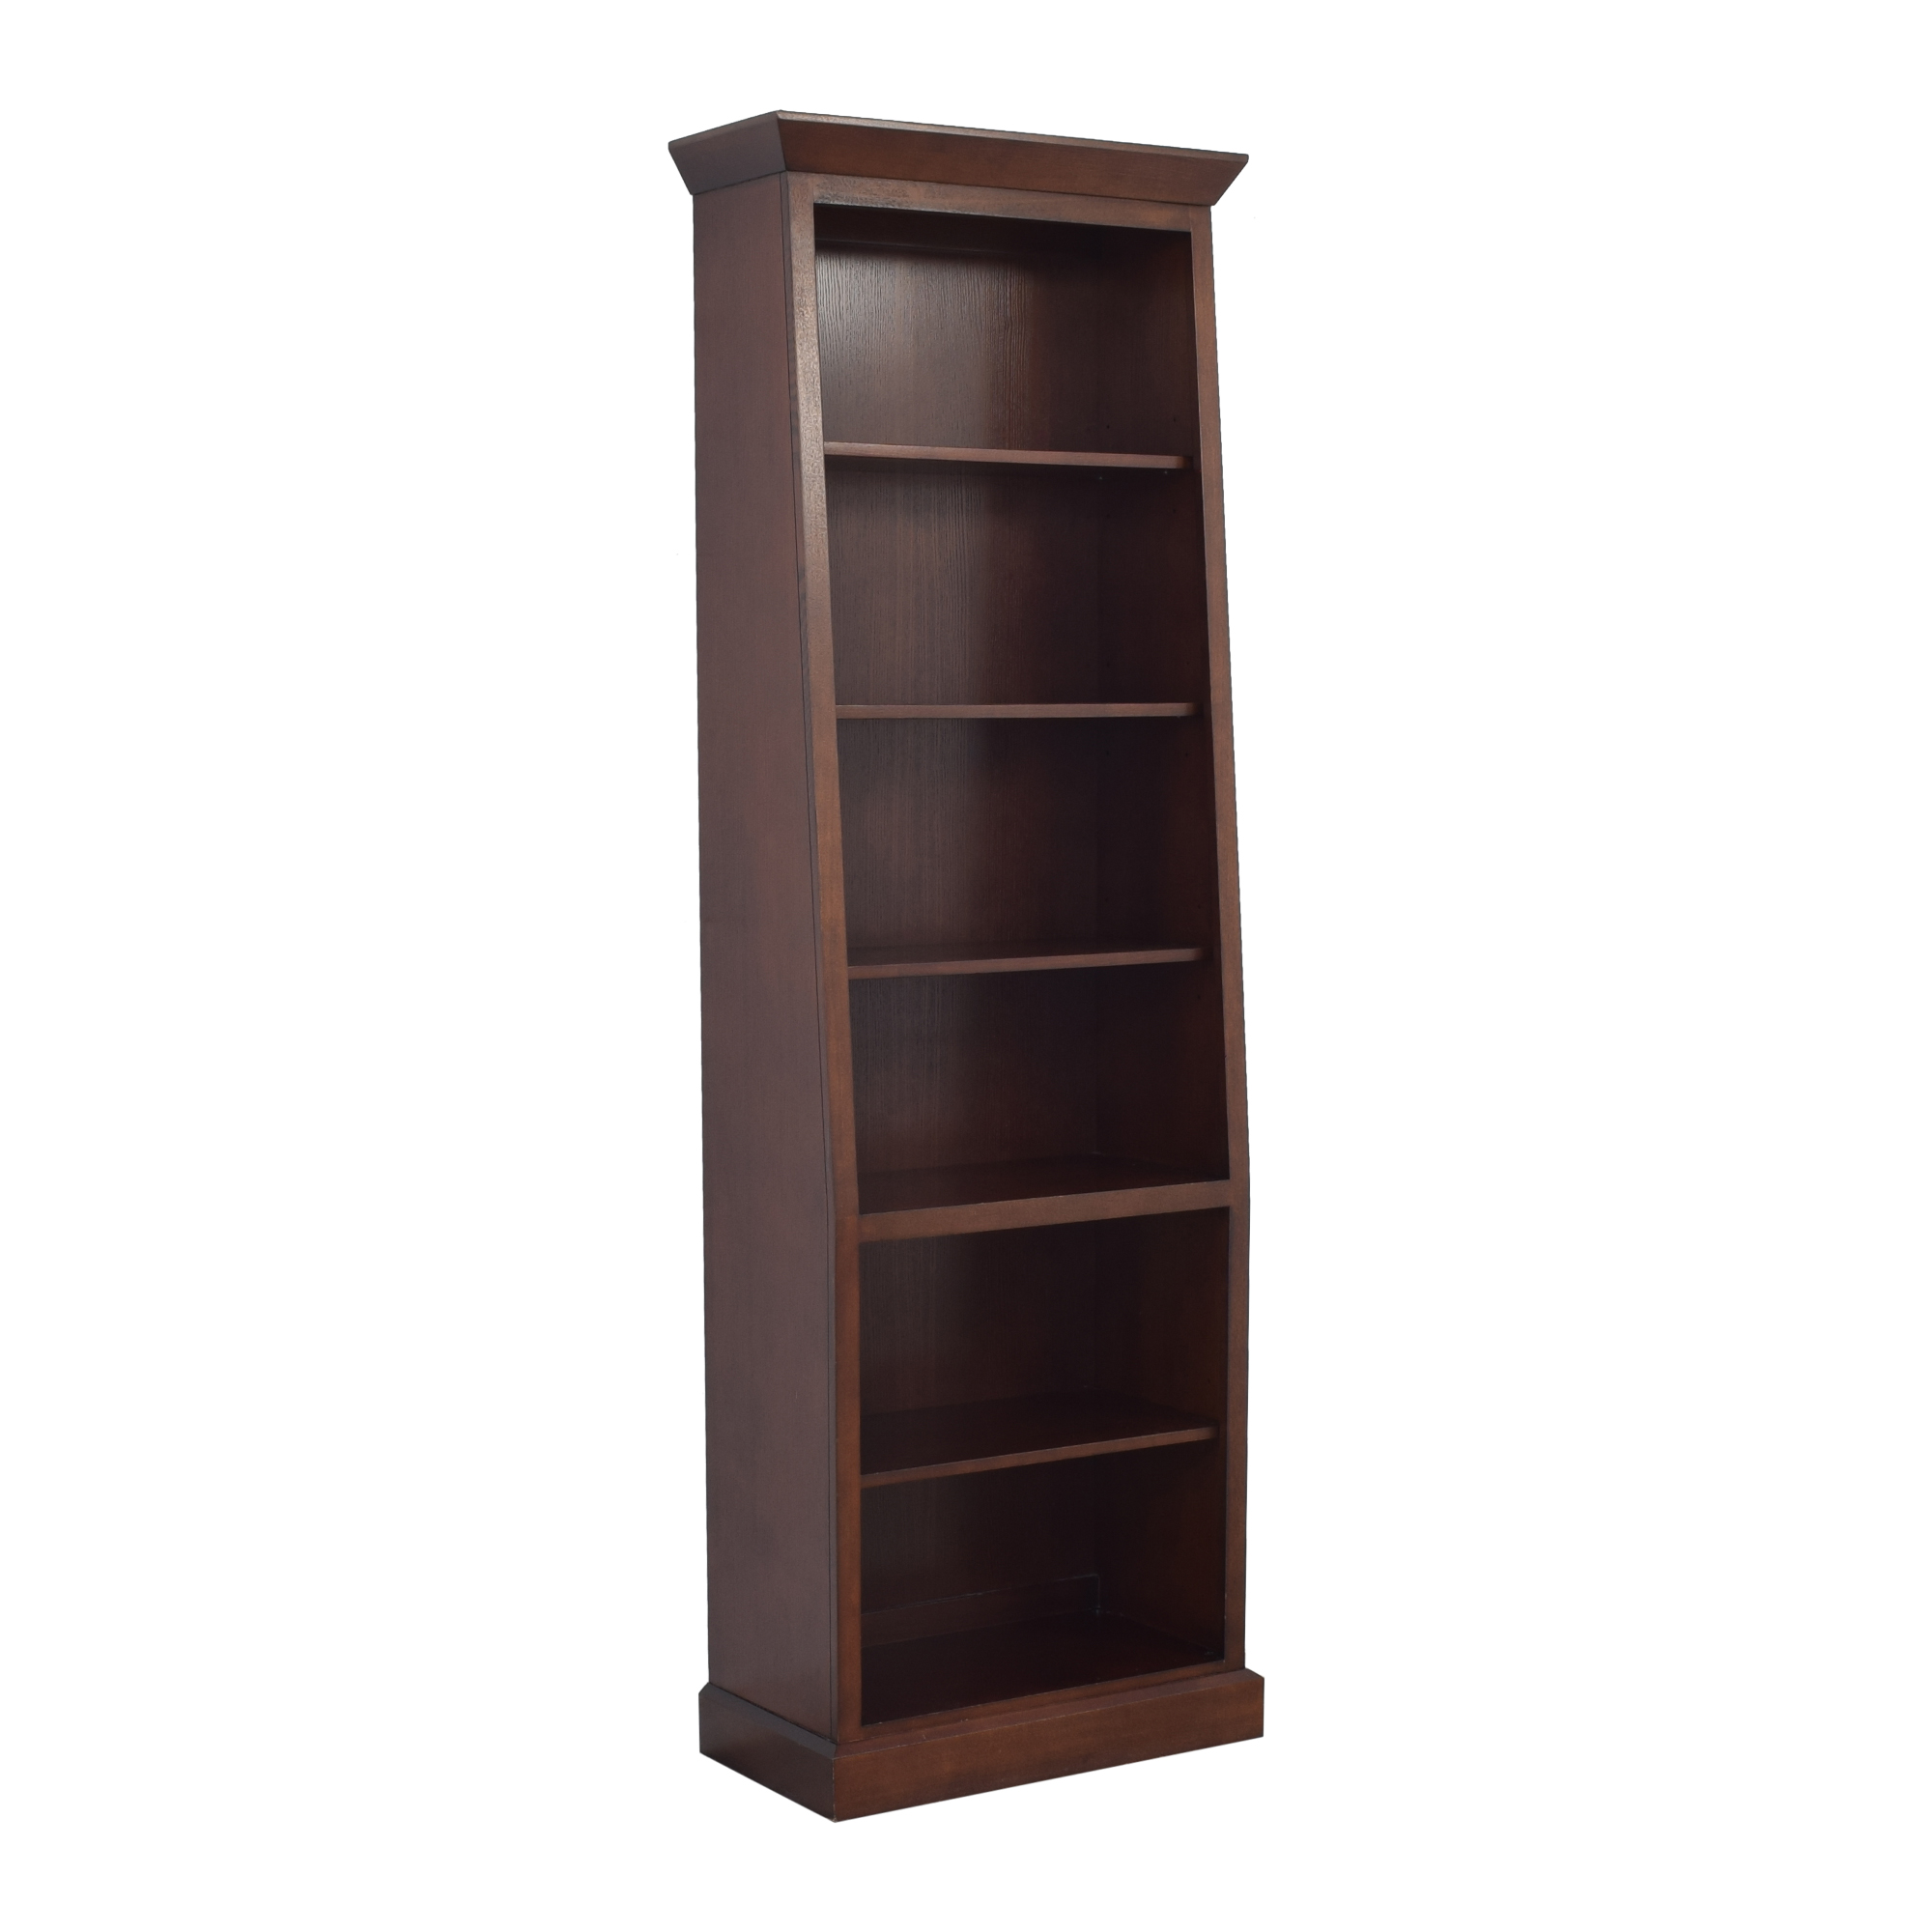 Ethan Allen Tall Bookcase / Bookcases & Shelving